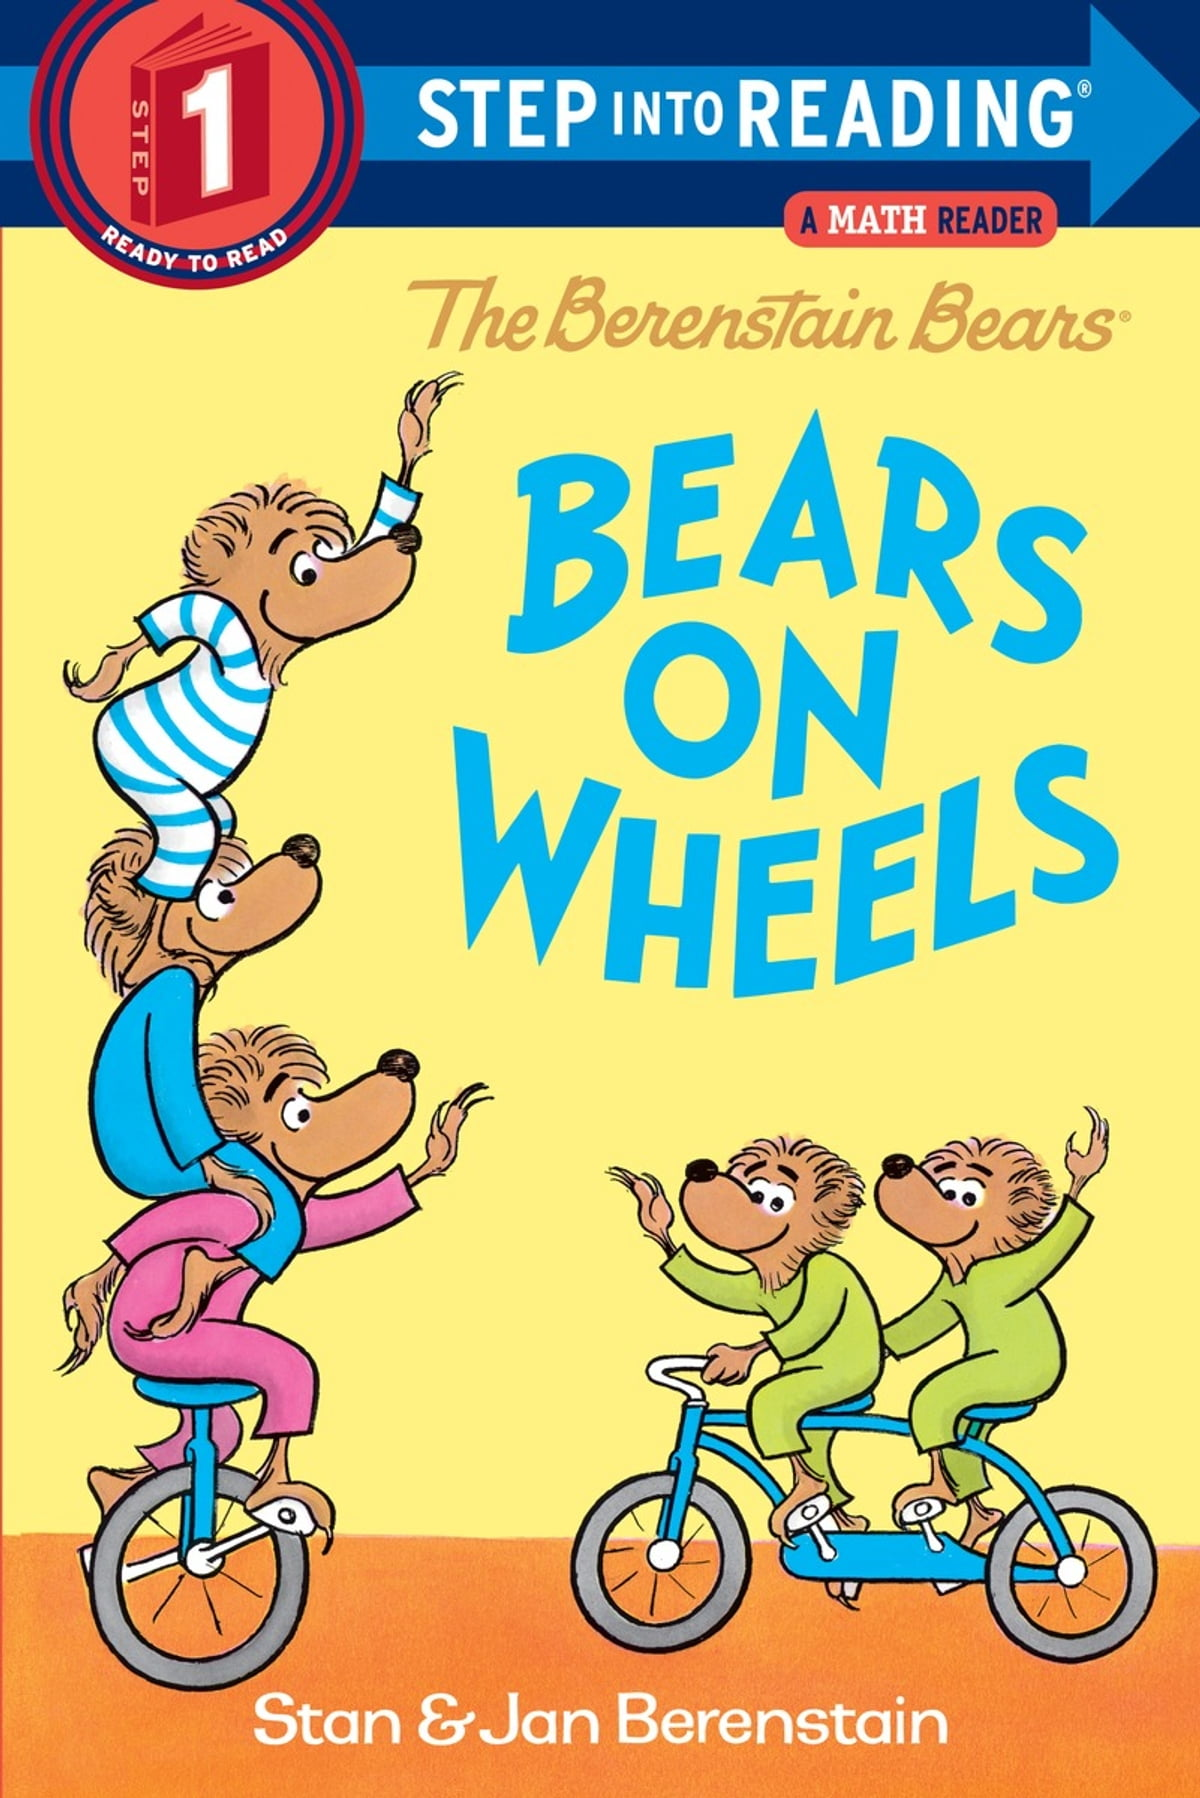 The berenstain bears bears on wheels ebook by stan berenstain the berenstain bears bears on wheels ebook by stan berenstain 9780385391375 rakuten kobo fandeluxe Ebook collections